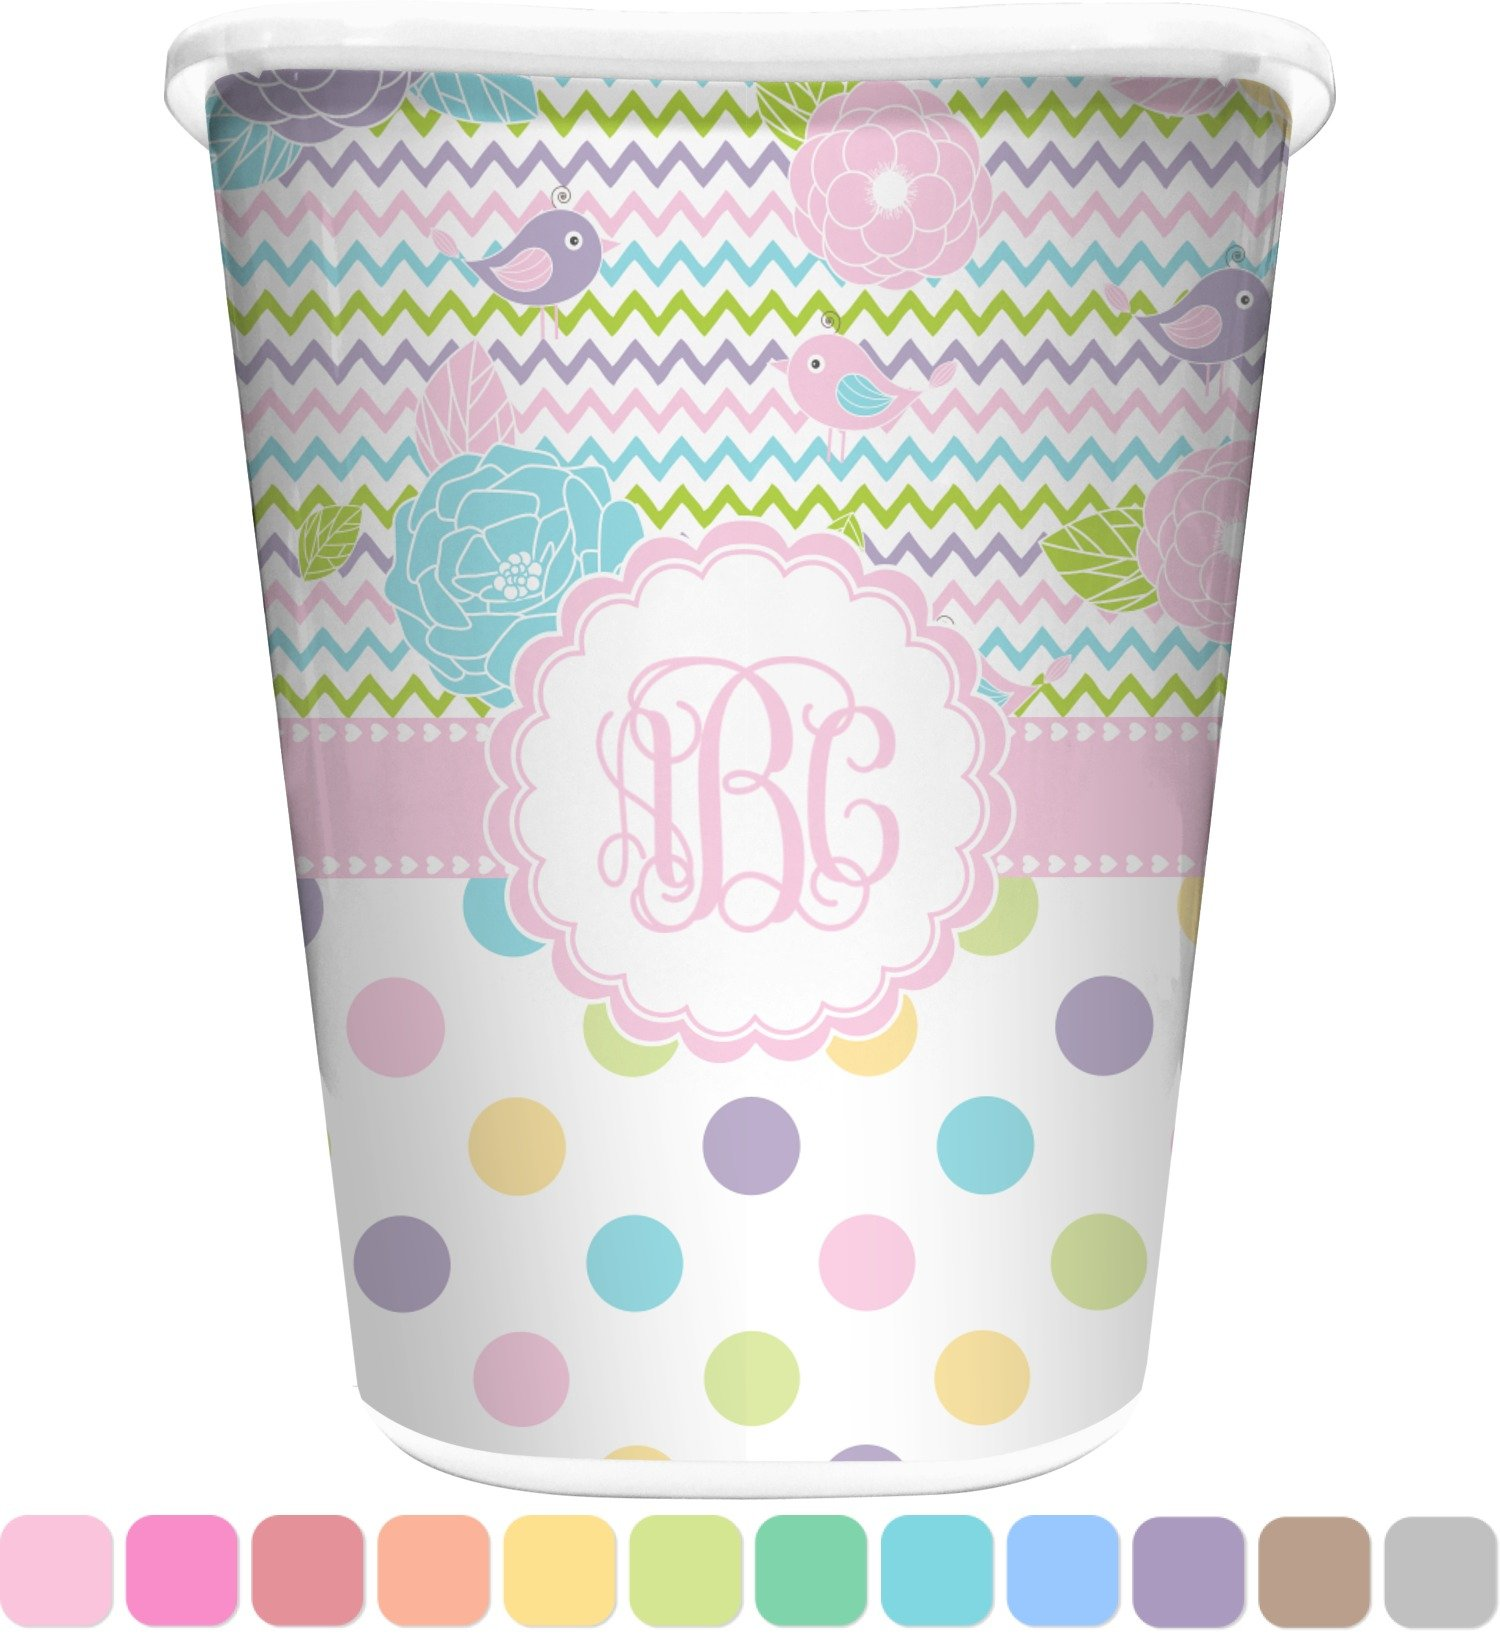 RNK Shops Girly Girl Waste Basket - Double Sided (White) (Personalized)